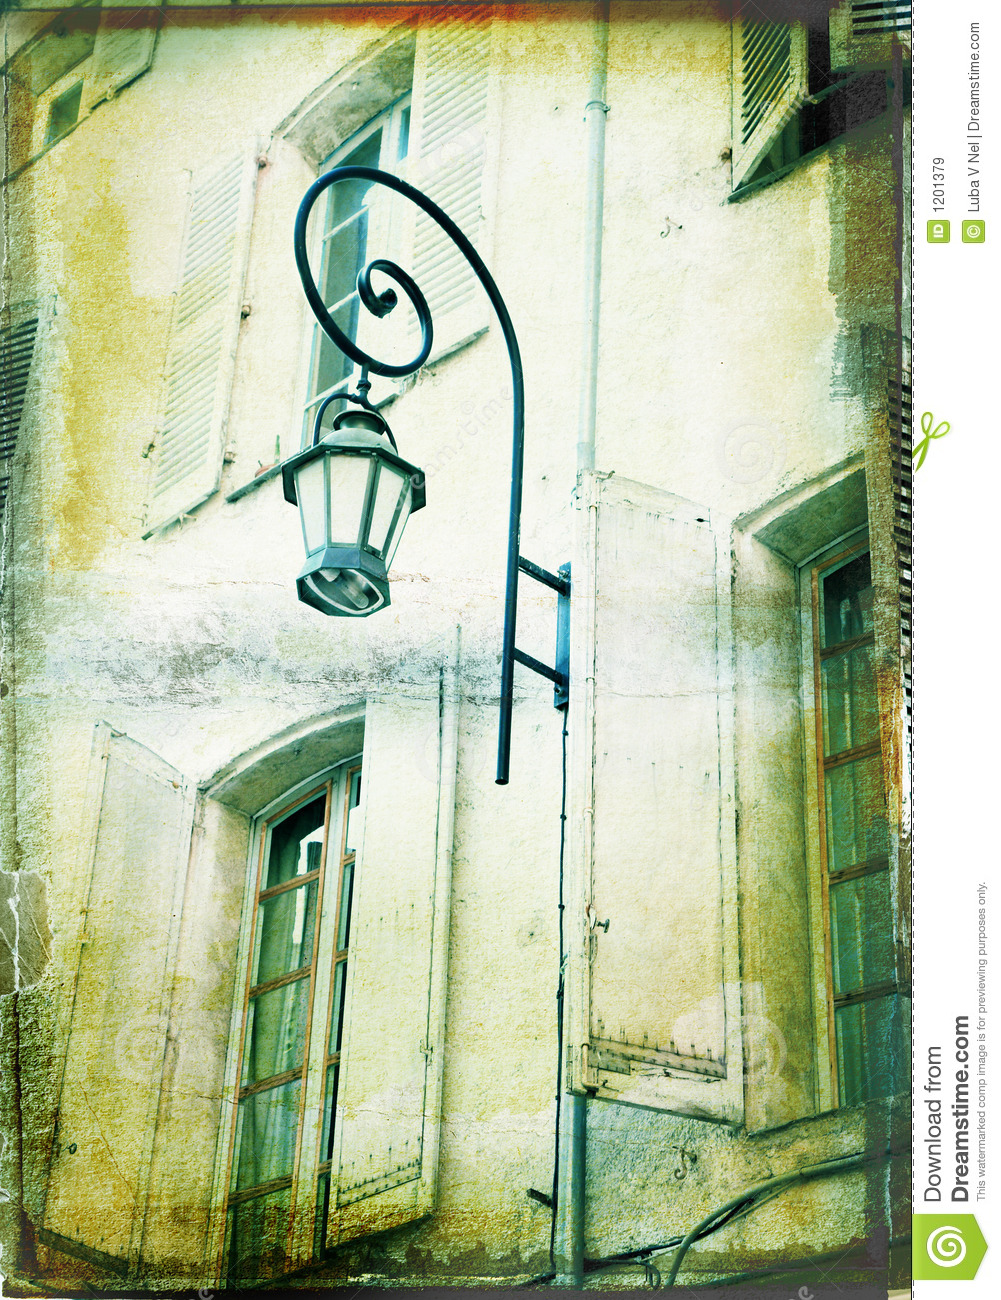 Grunge illustration of a house with a lamp